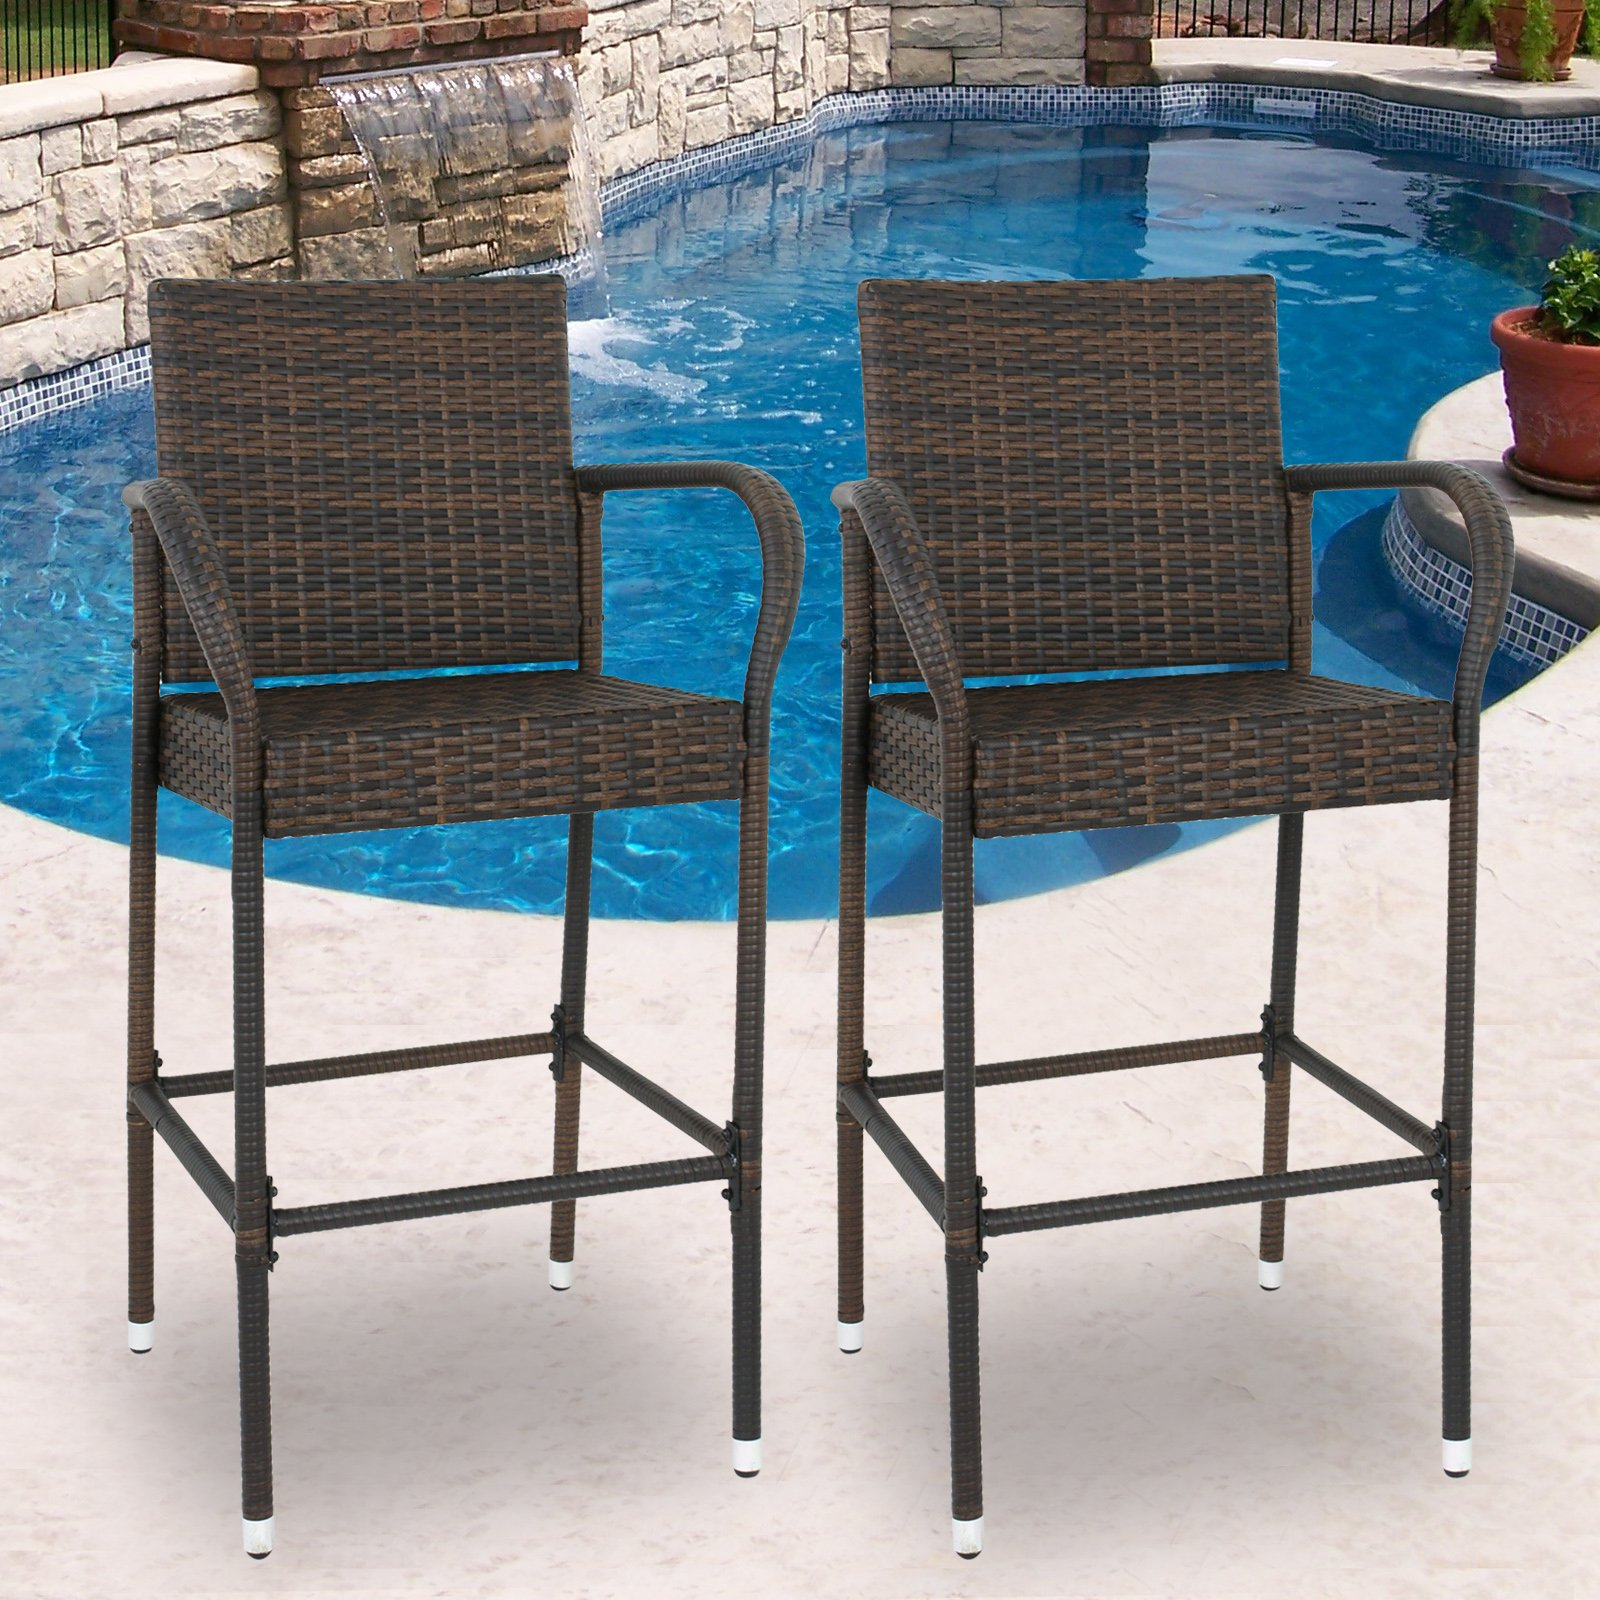 SUPER DEAL Wicker Bar Stool Outdoor Backyard Rattan Chair Patio Furniture Chair w/Iron Frame, Armrest and Footrest, Set of 2